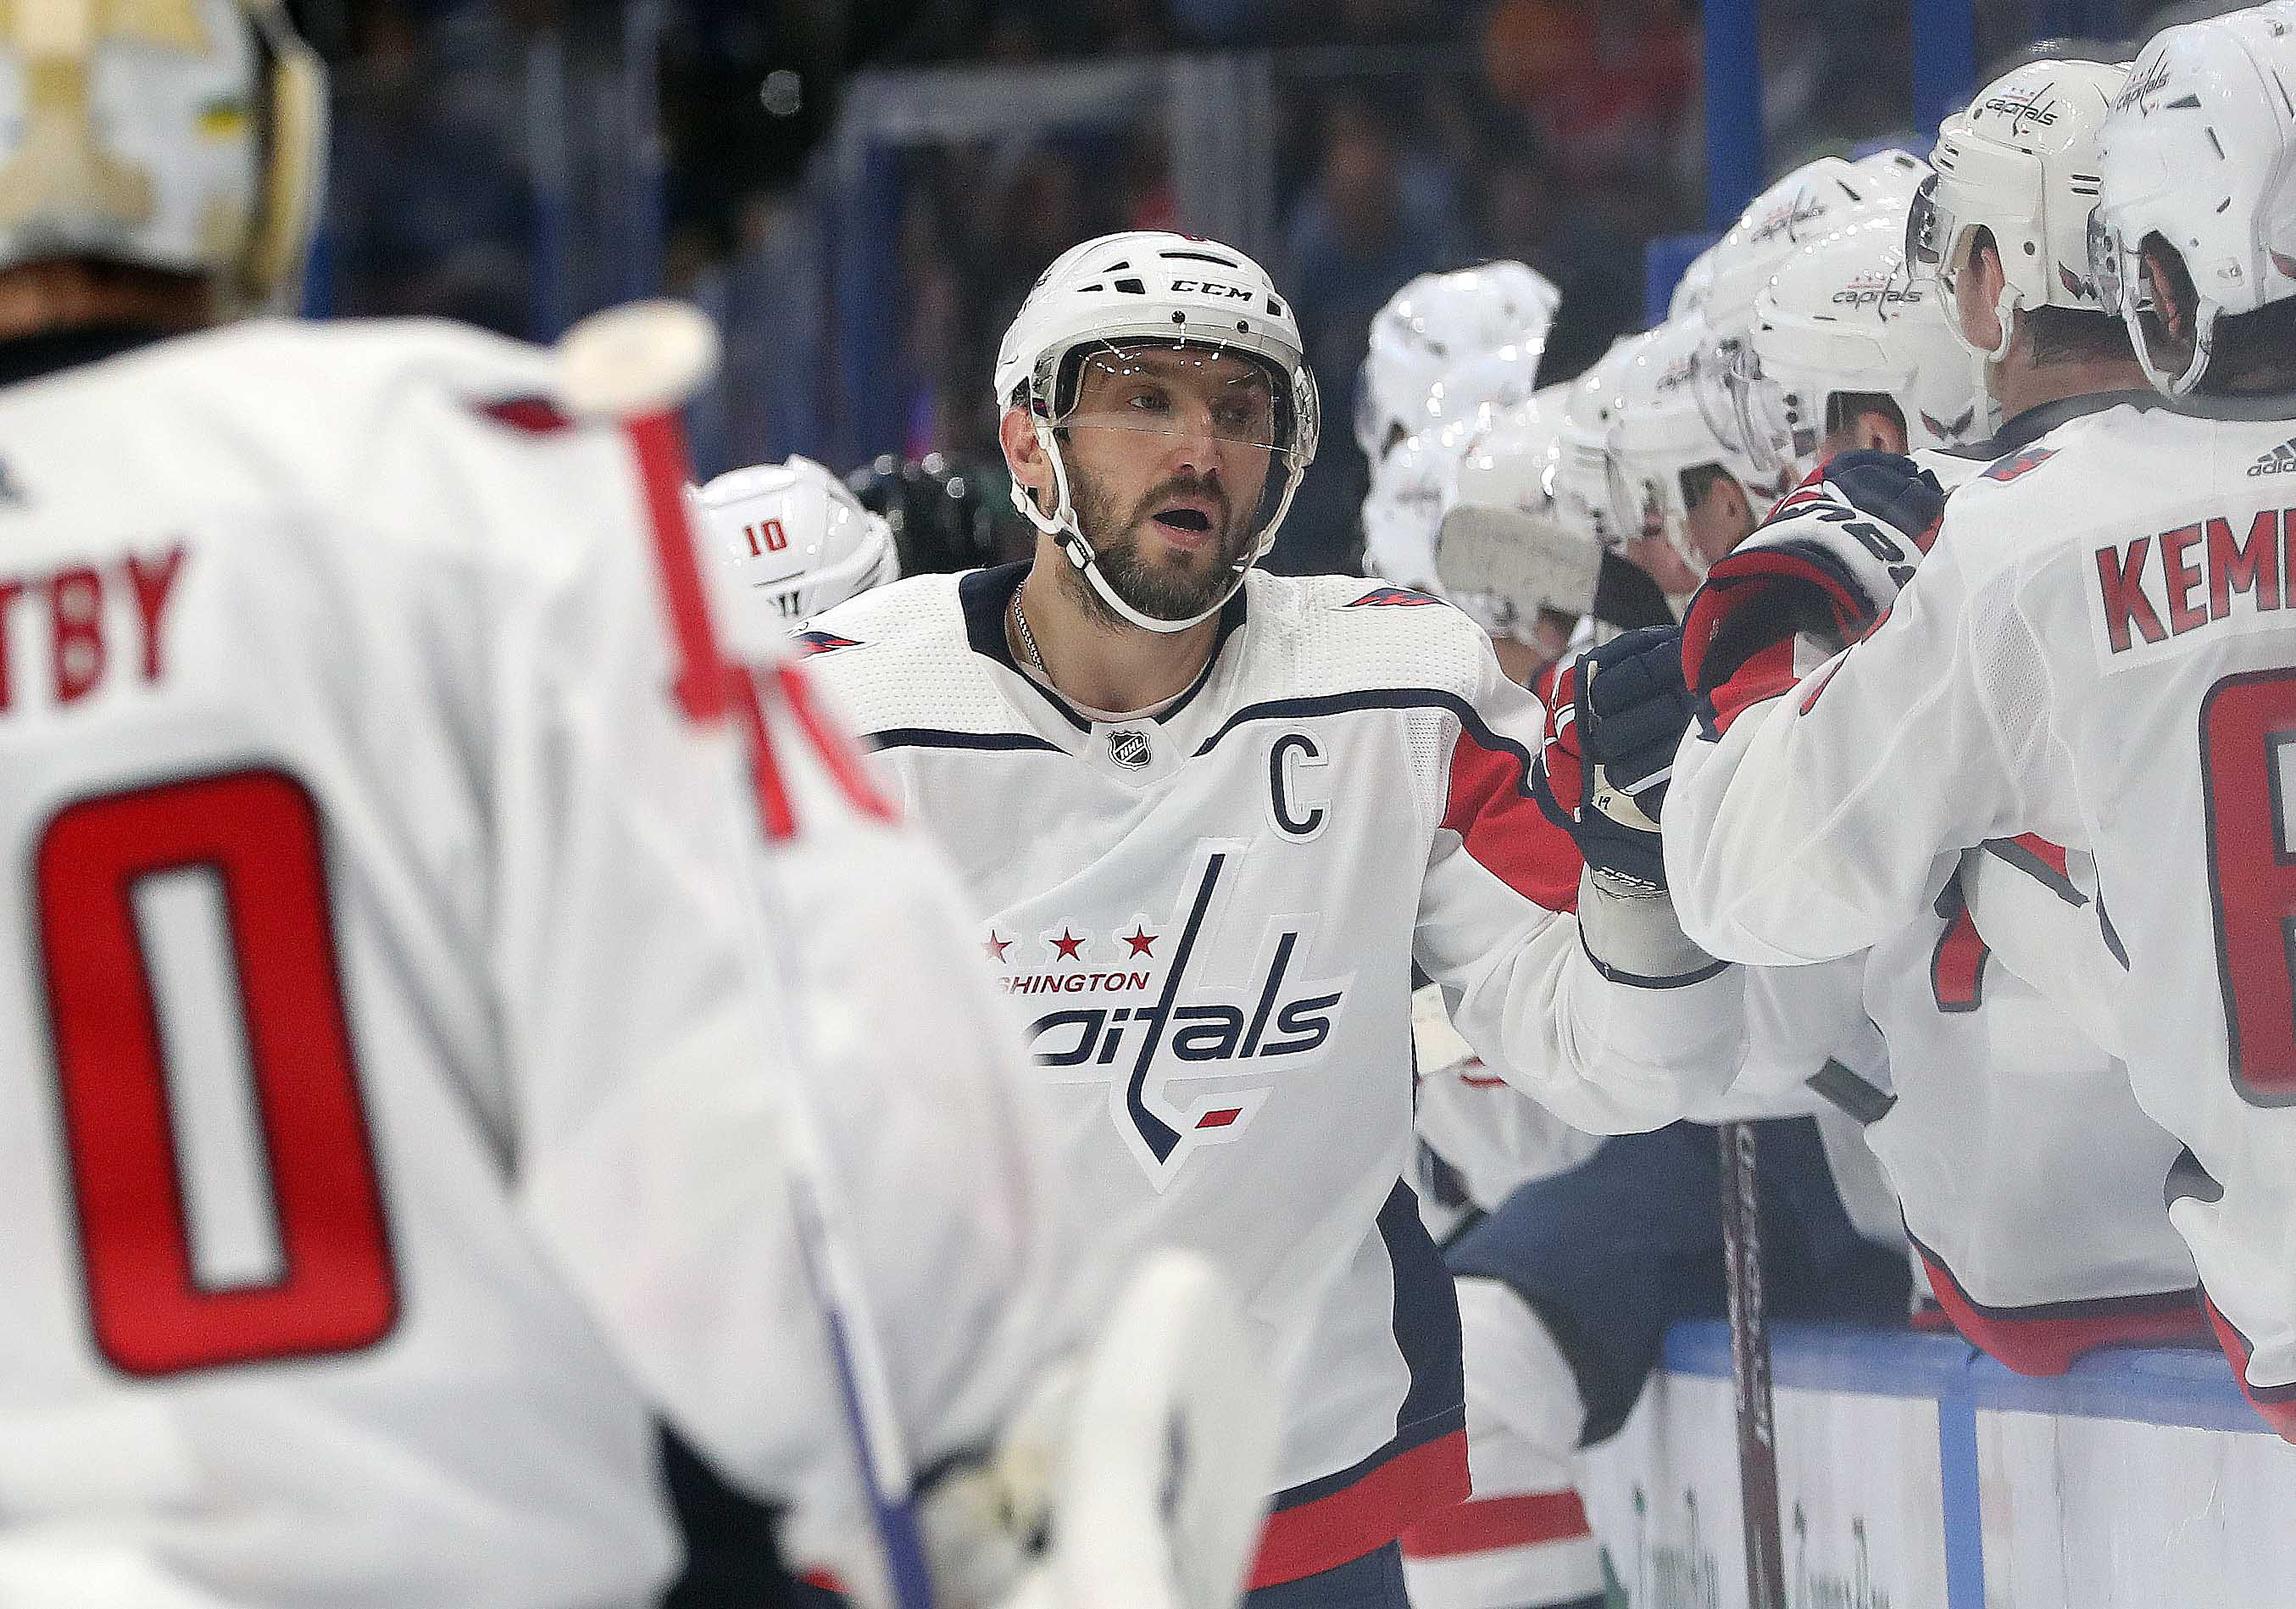 Lightning In A Bottle: Can the Capitals contain the Bolts down the stretch?